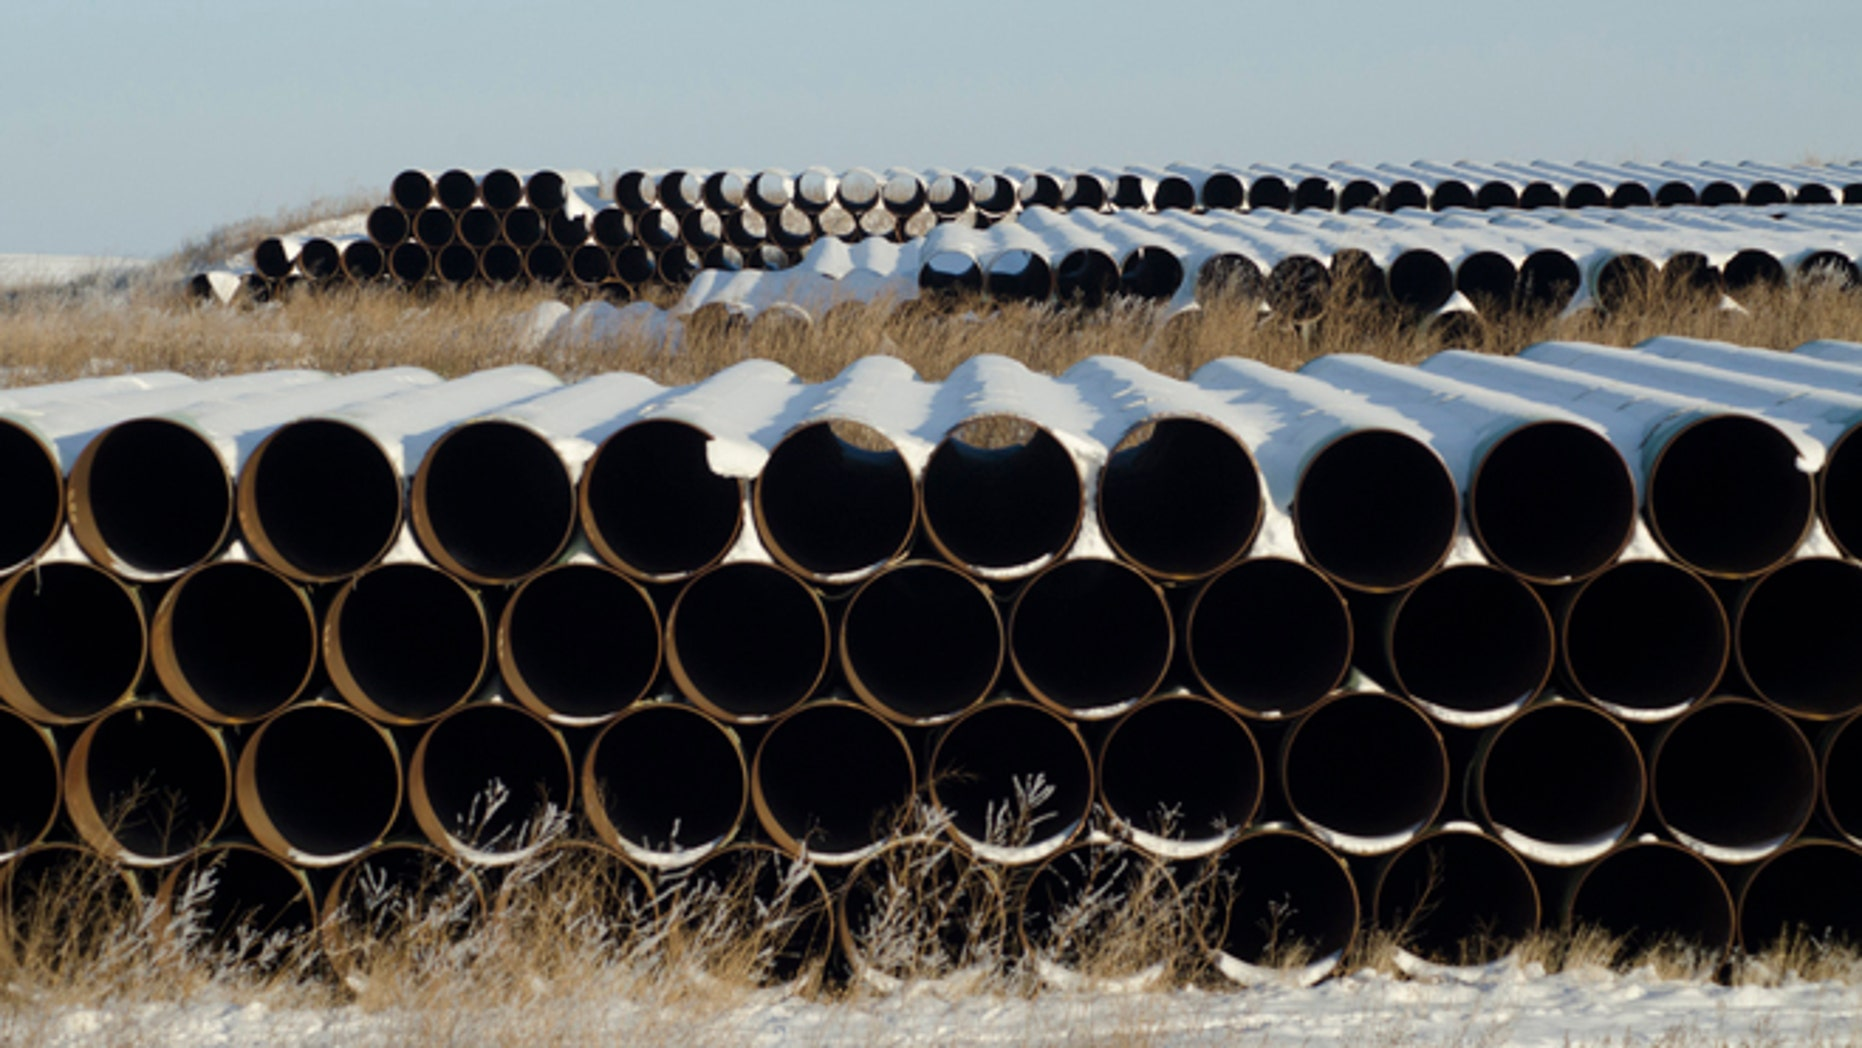 This Nov. 14, 2014 file photo shows a depot used to store pipes for Transcanada Corp's planned Keystone XL oil pipeline in Gascoyne, N.D.